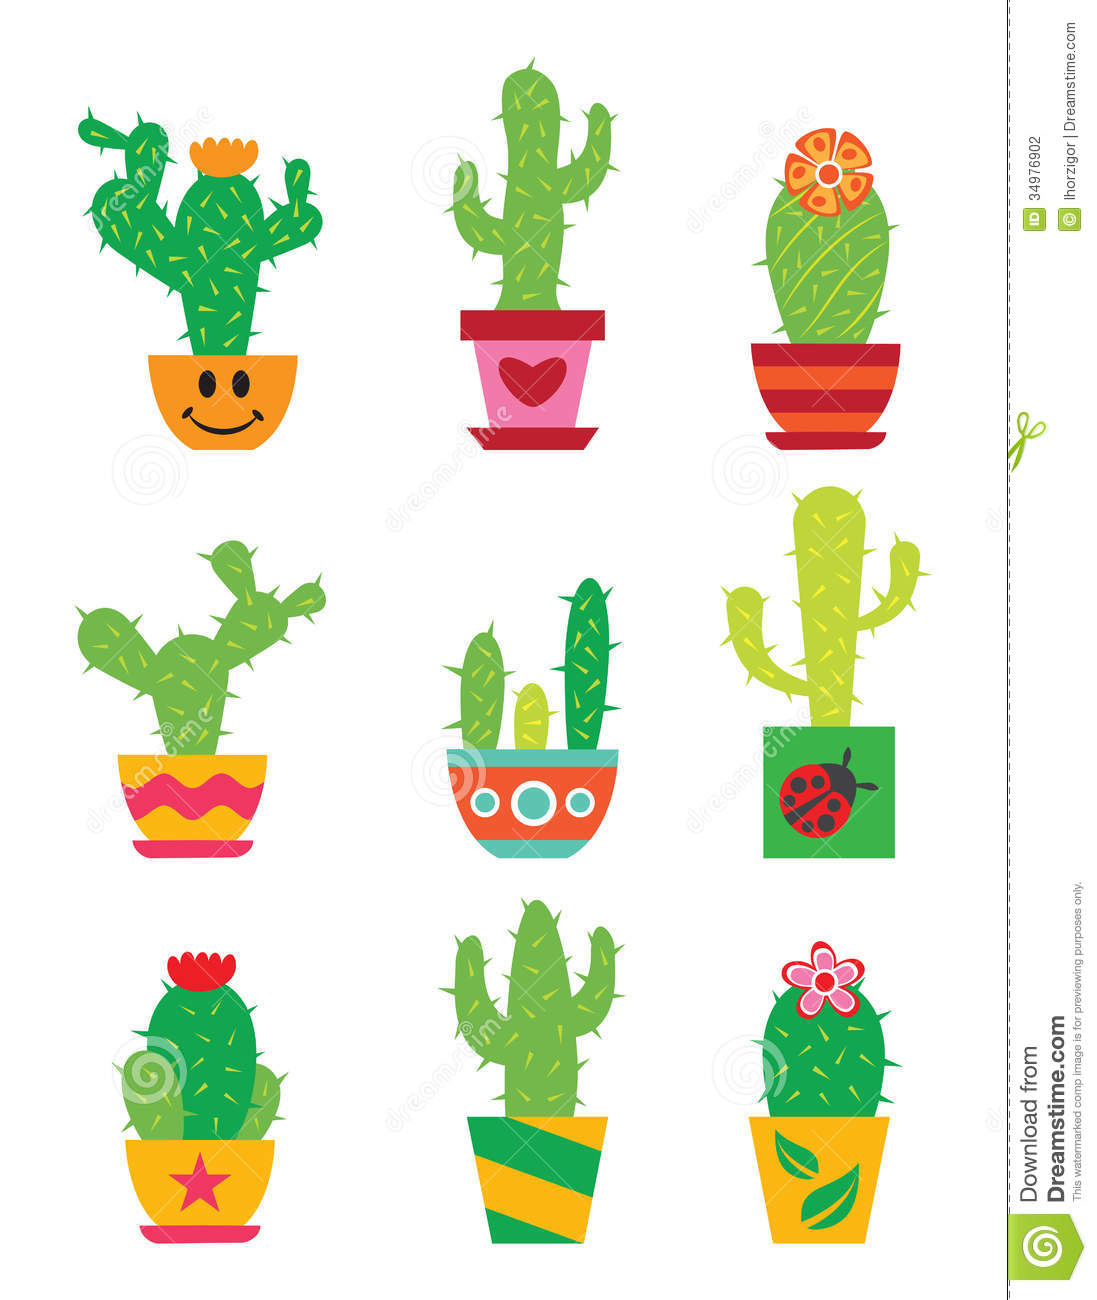 Stock Photography Cactus Set White Background Image34976902 on thumbs up clip art